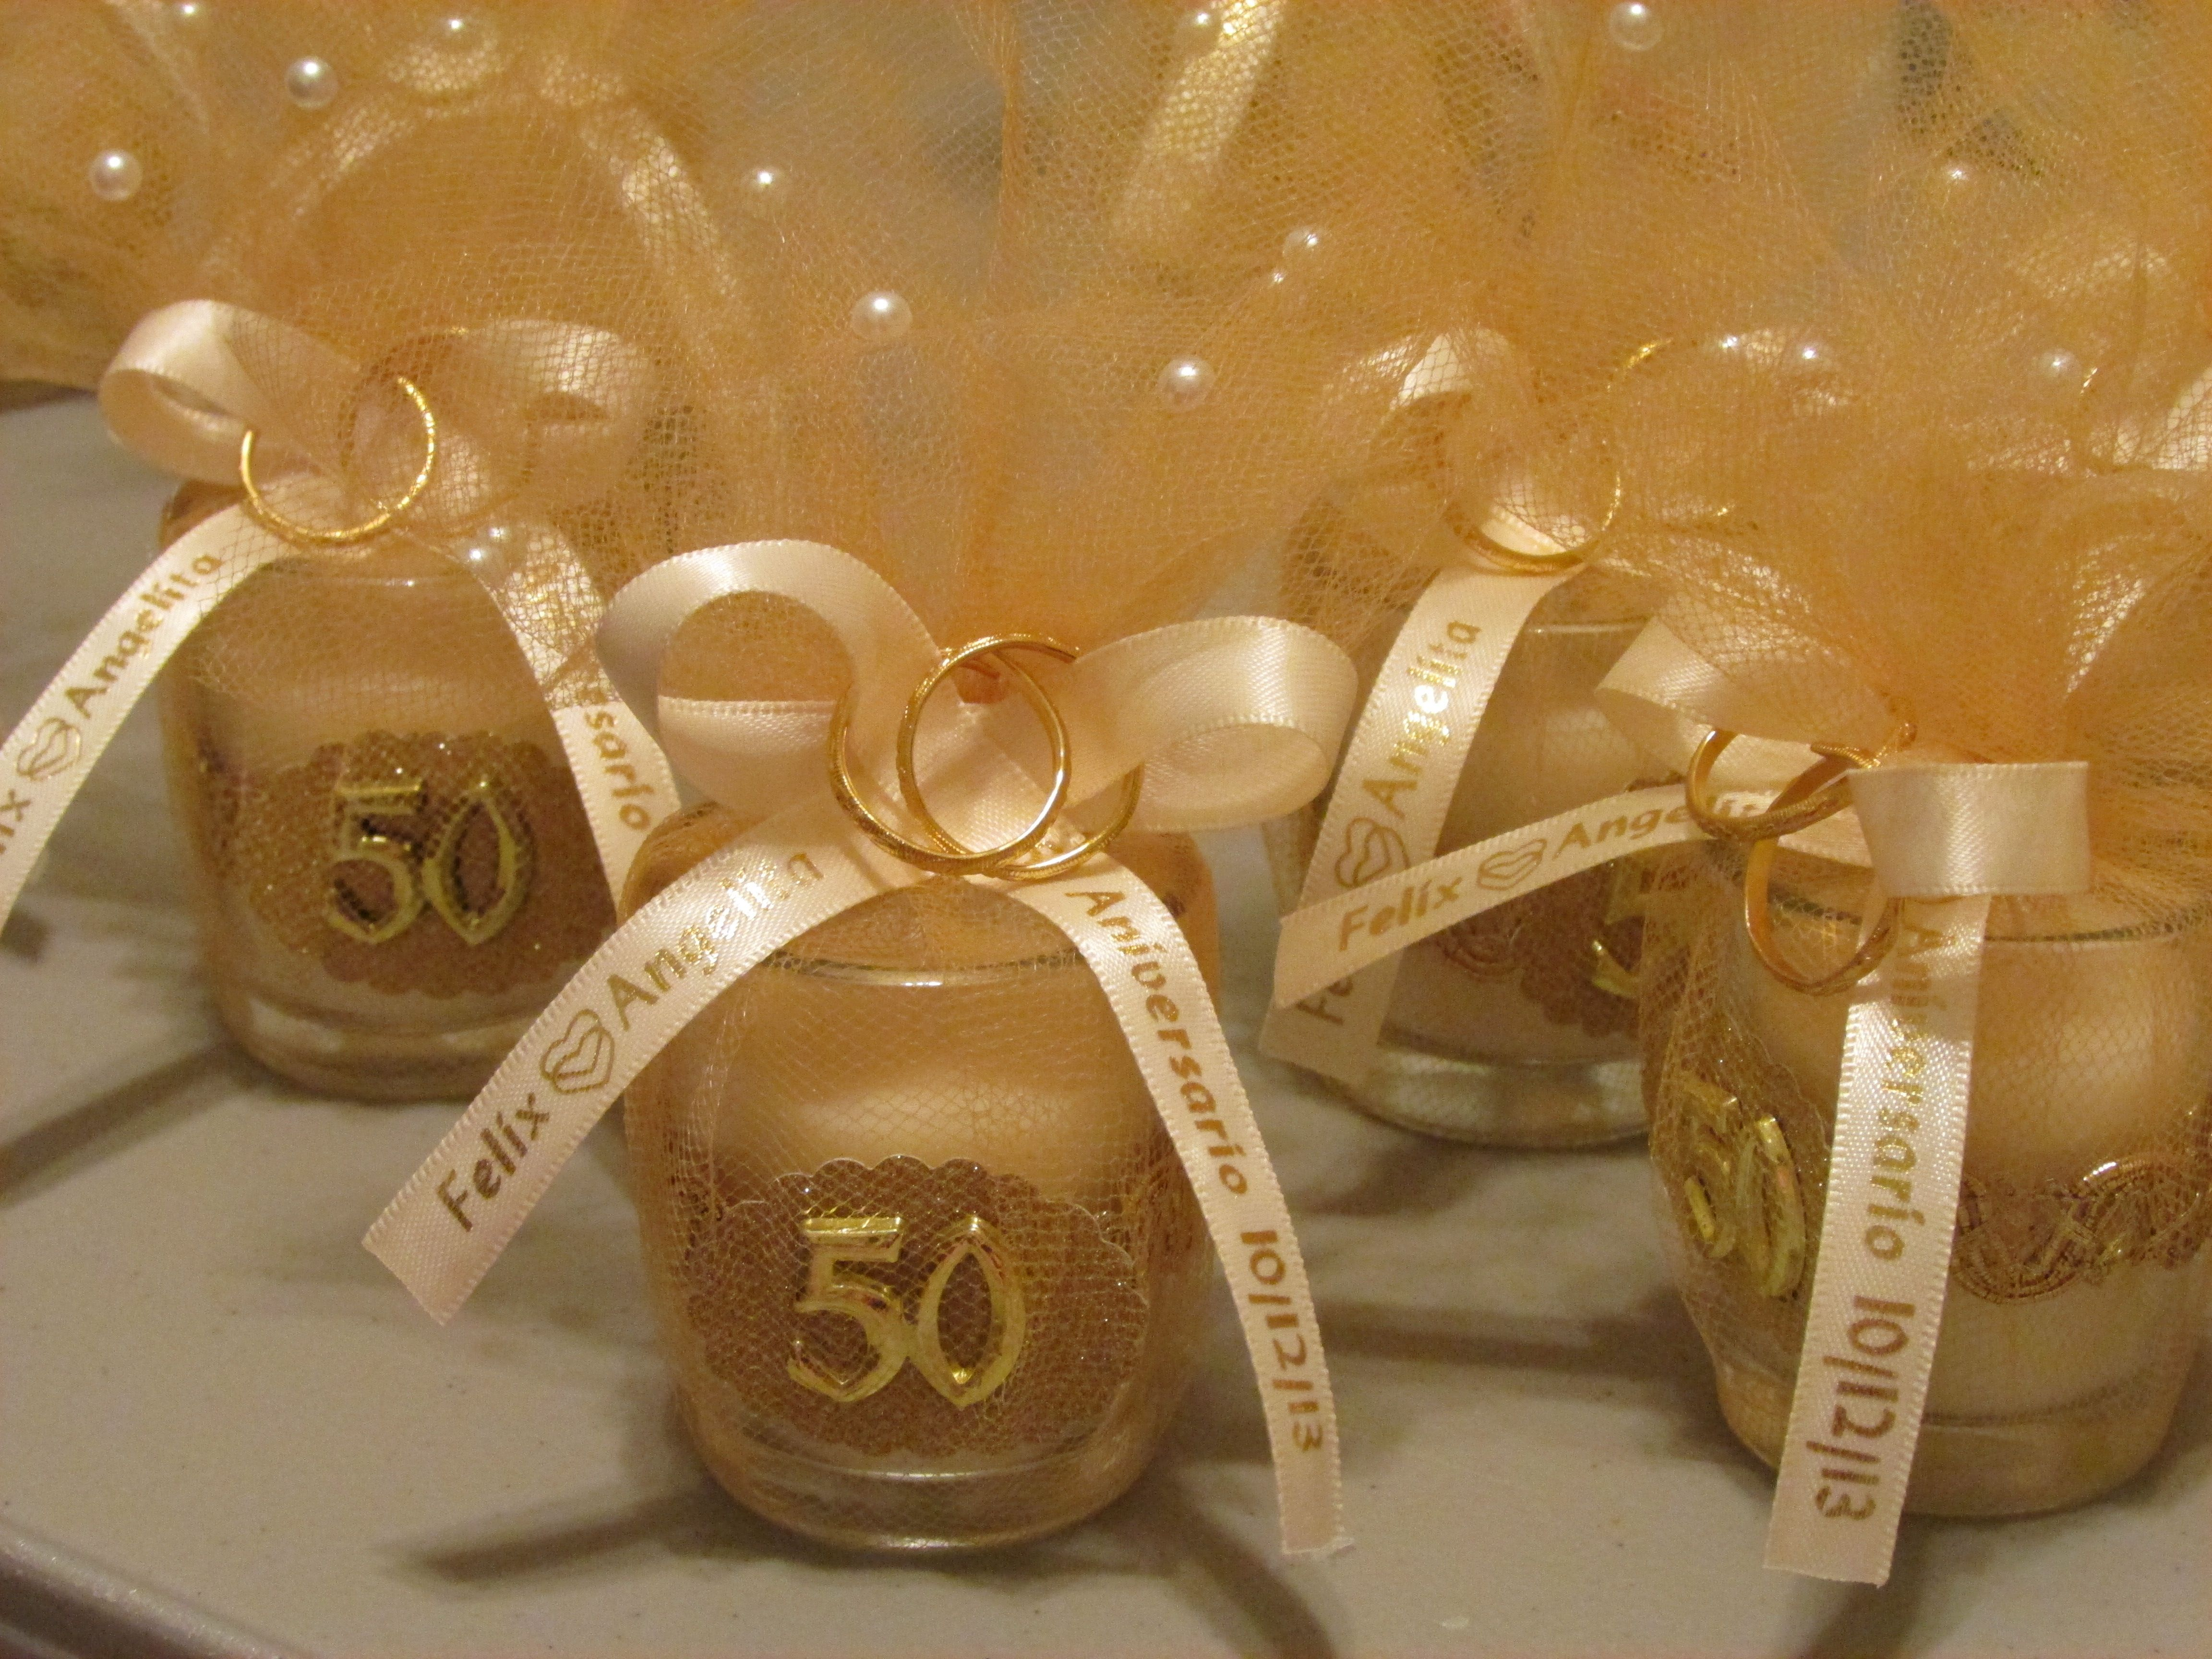 Theme Ideas For 50th Wedding Anniversary Traditional 50th Anniversar In 2020 50th Wedding Anniversary Favors Wedding Anniversary Favors 50th Anniversary Party Favors